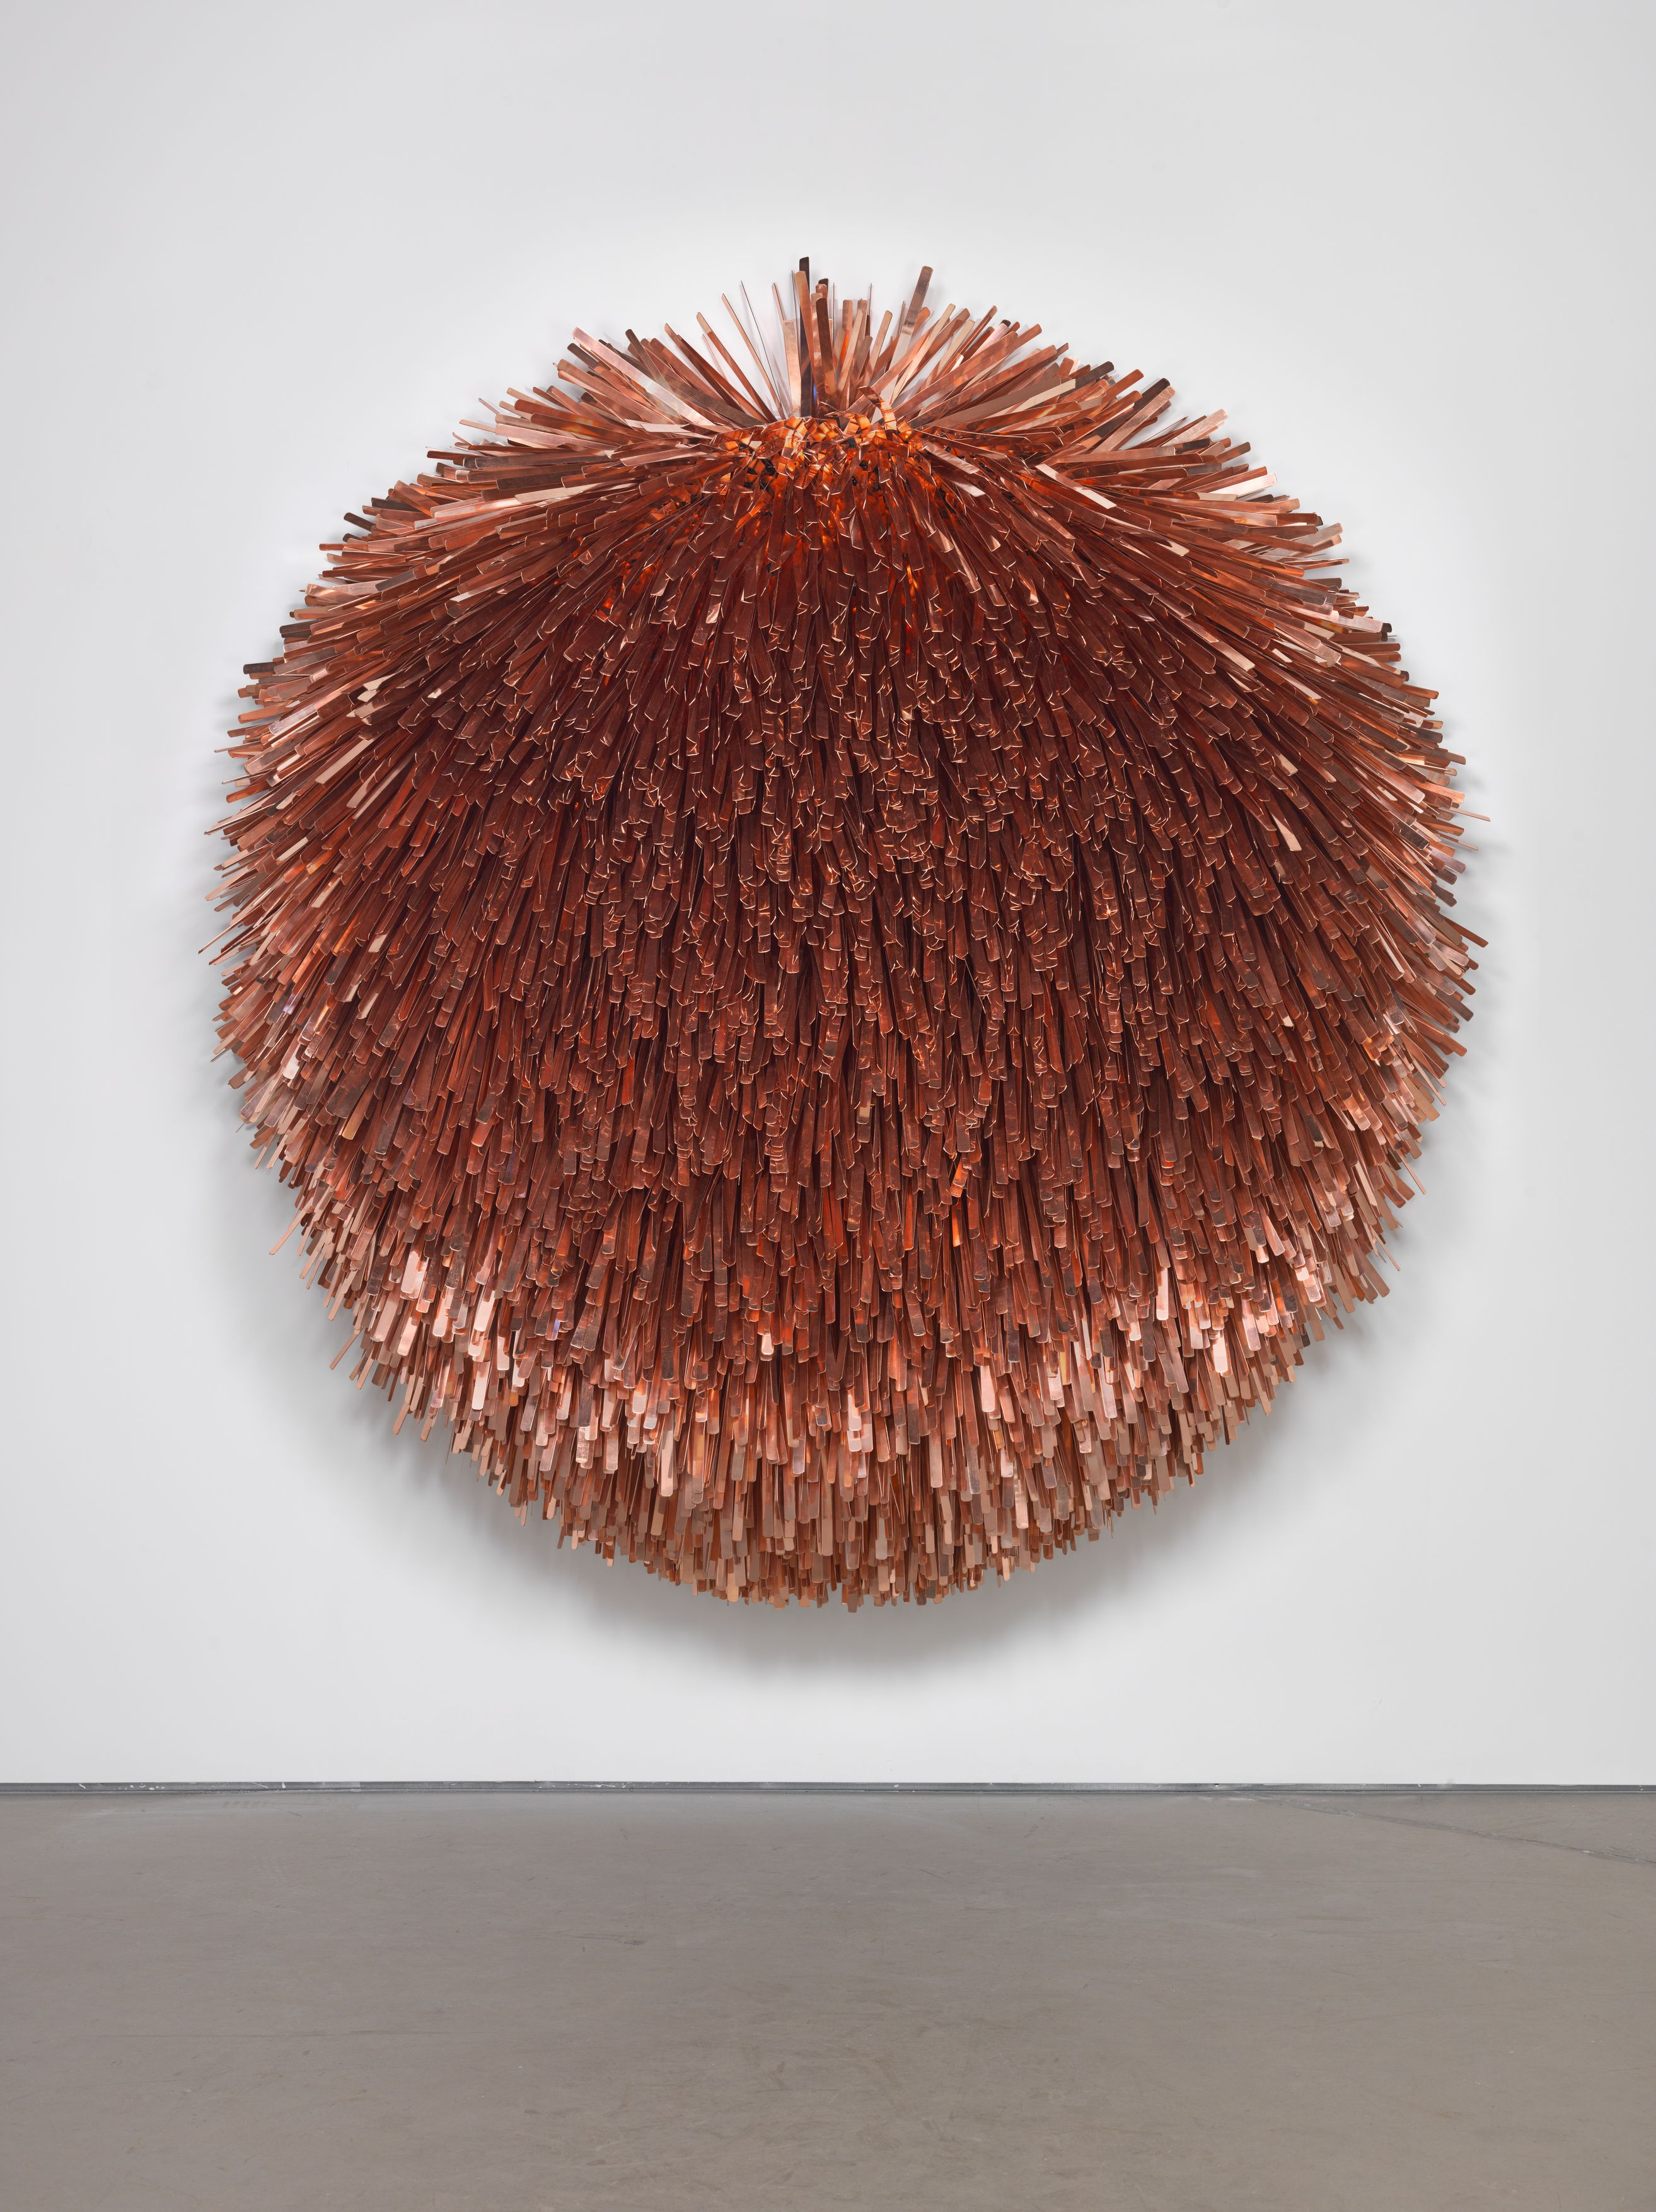 A fringed coppery-orange, circular sculpture